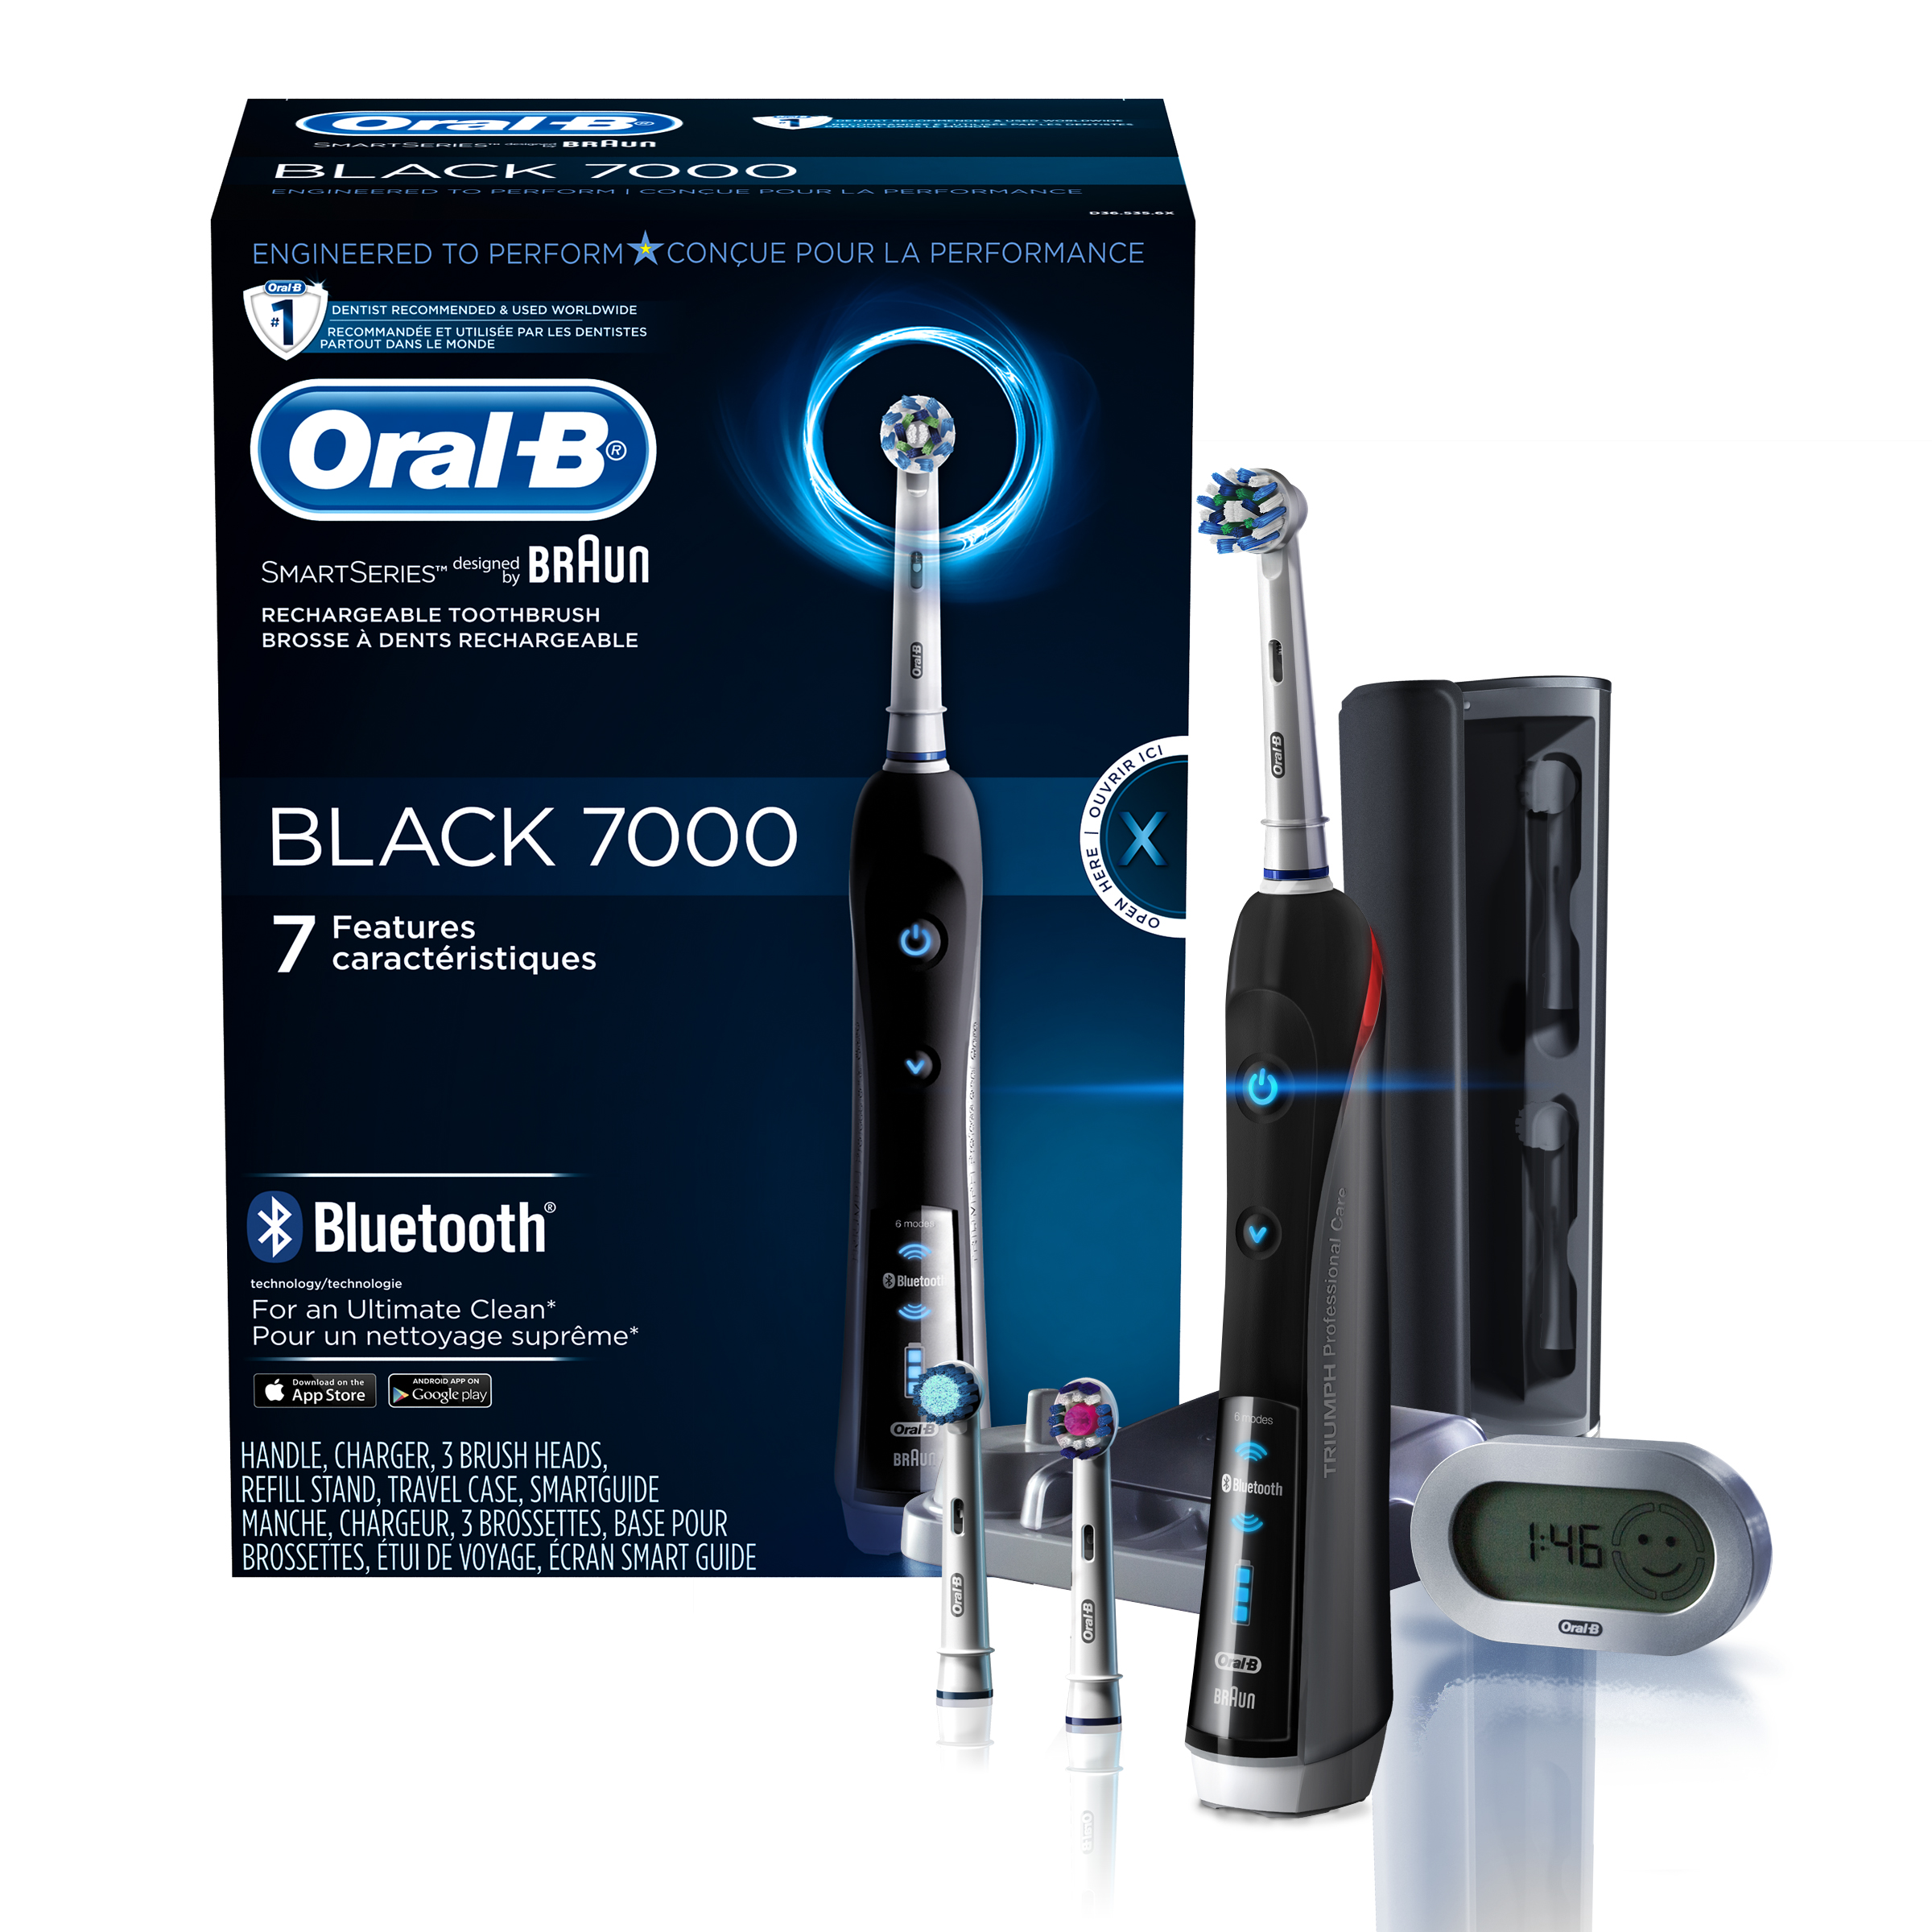 Oral-B 7000 ($25 Rebate Available) SmartSeries Rechargeable Power Electric Toothbrush with 3 Replacement Brush Heads, Bluetooth Connectivity and Travel Case, Black, Powered